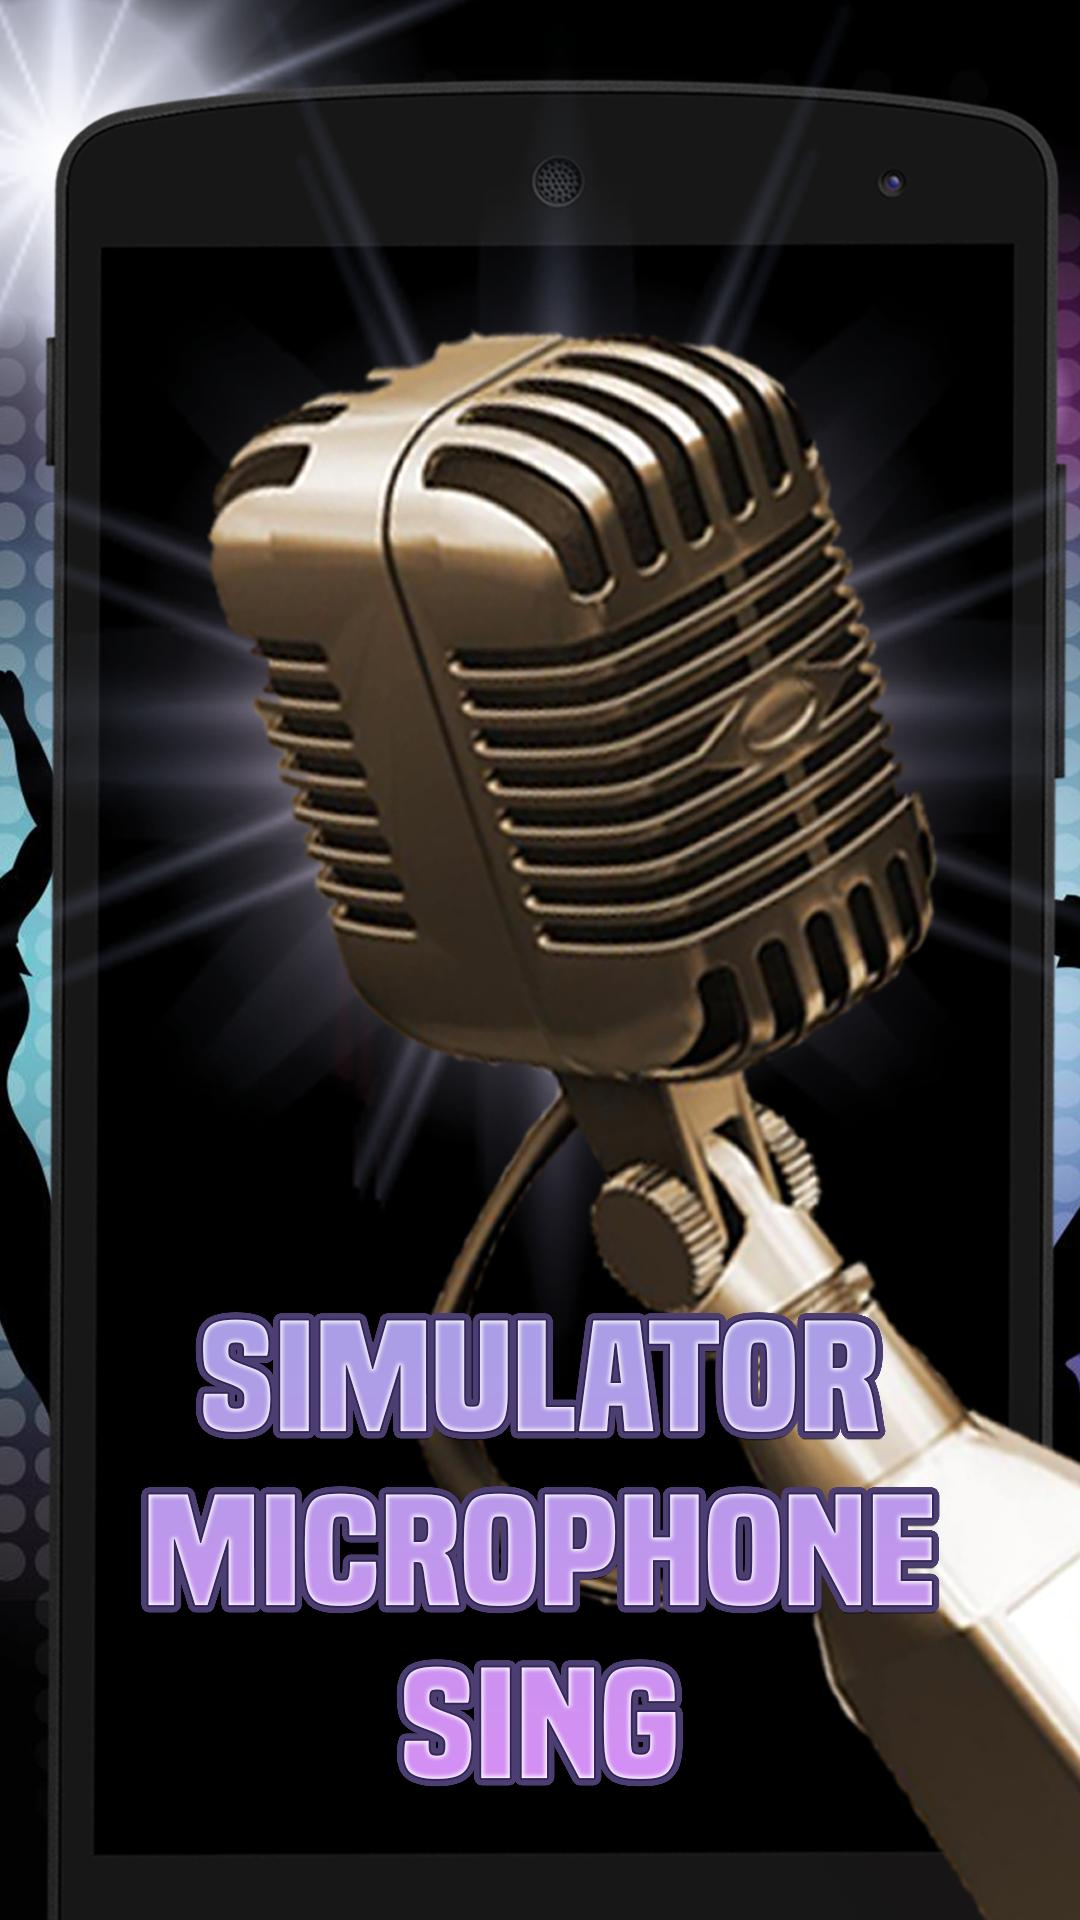 Simulator microphone sing for Android - APK Download